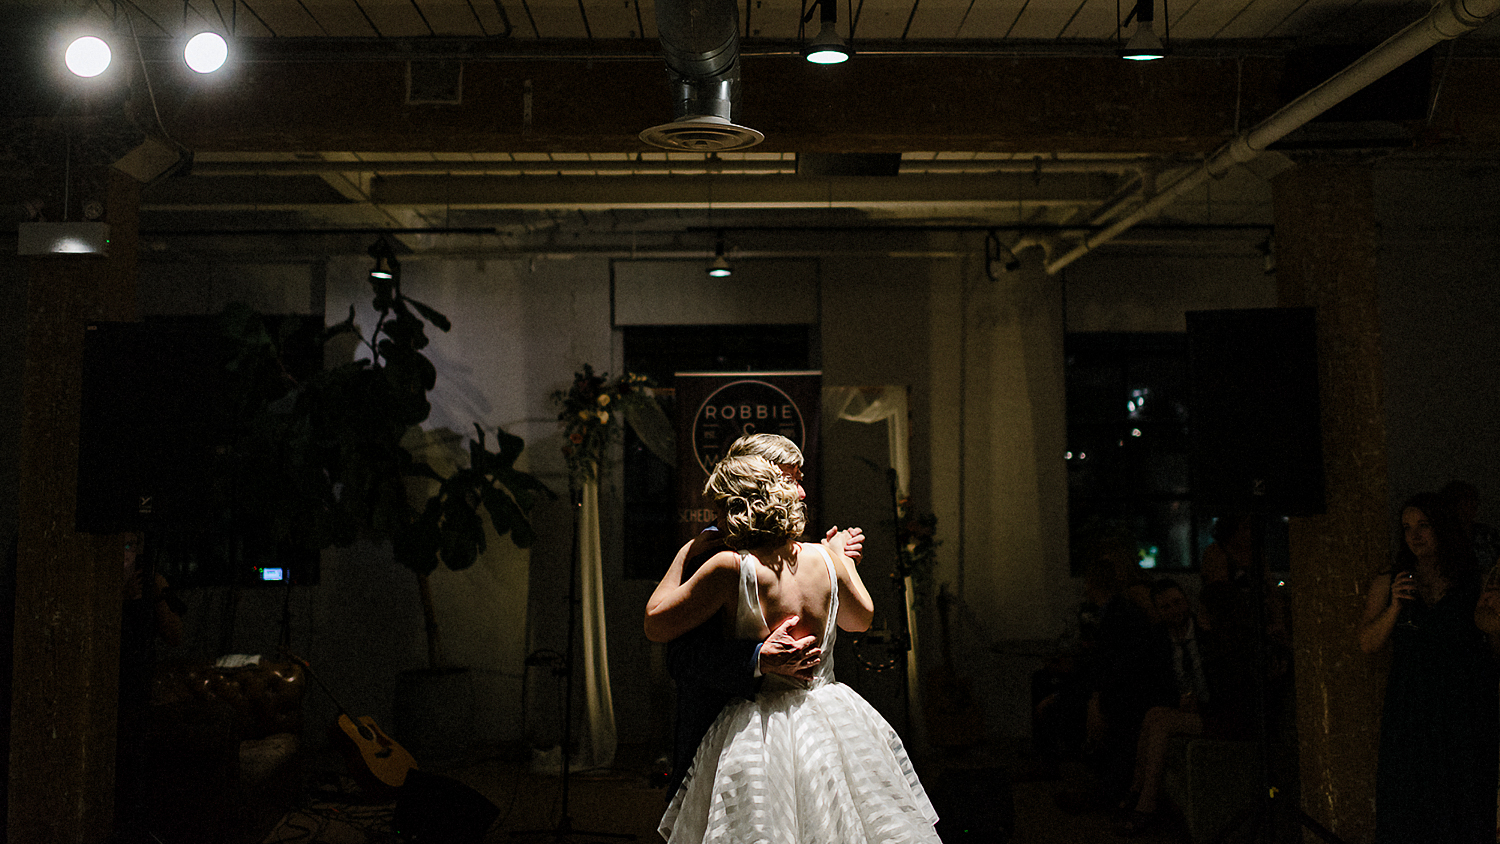 East-Room-Wedding-Queen-Street-East-Toronto-Intimate-Industrial-Wedding-Venue-Reception-Details-Grand-Electric-Food-Truck-Catering-candid-moments-wedding-photography-candid-laughs-14.jpg